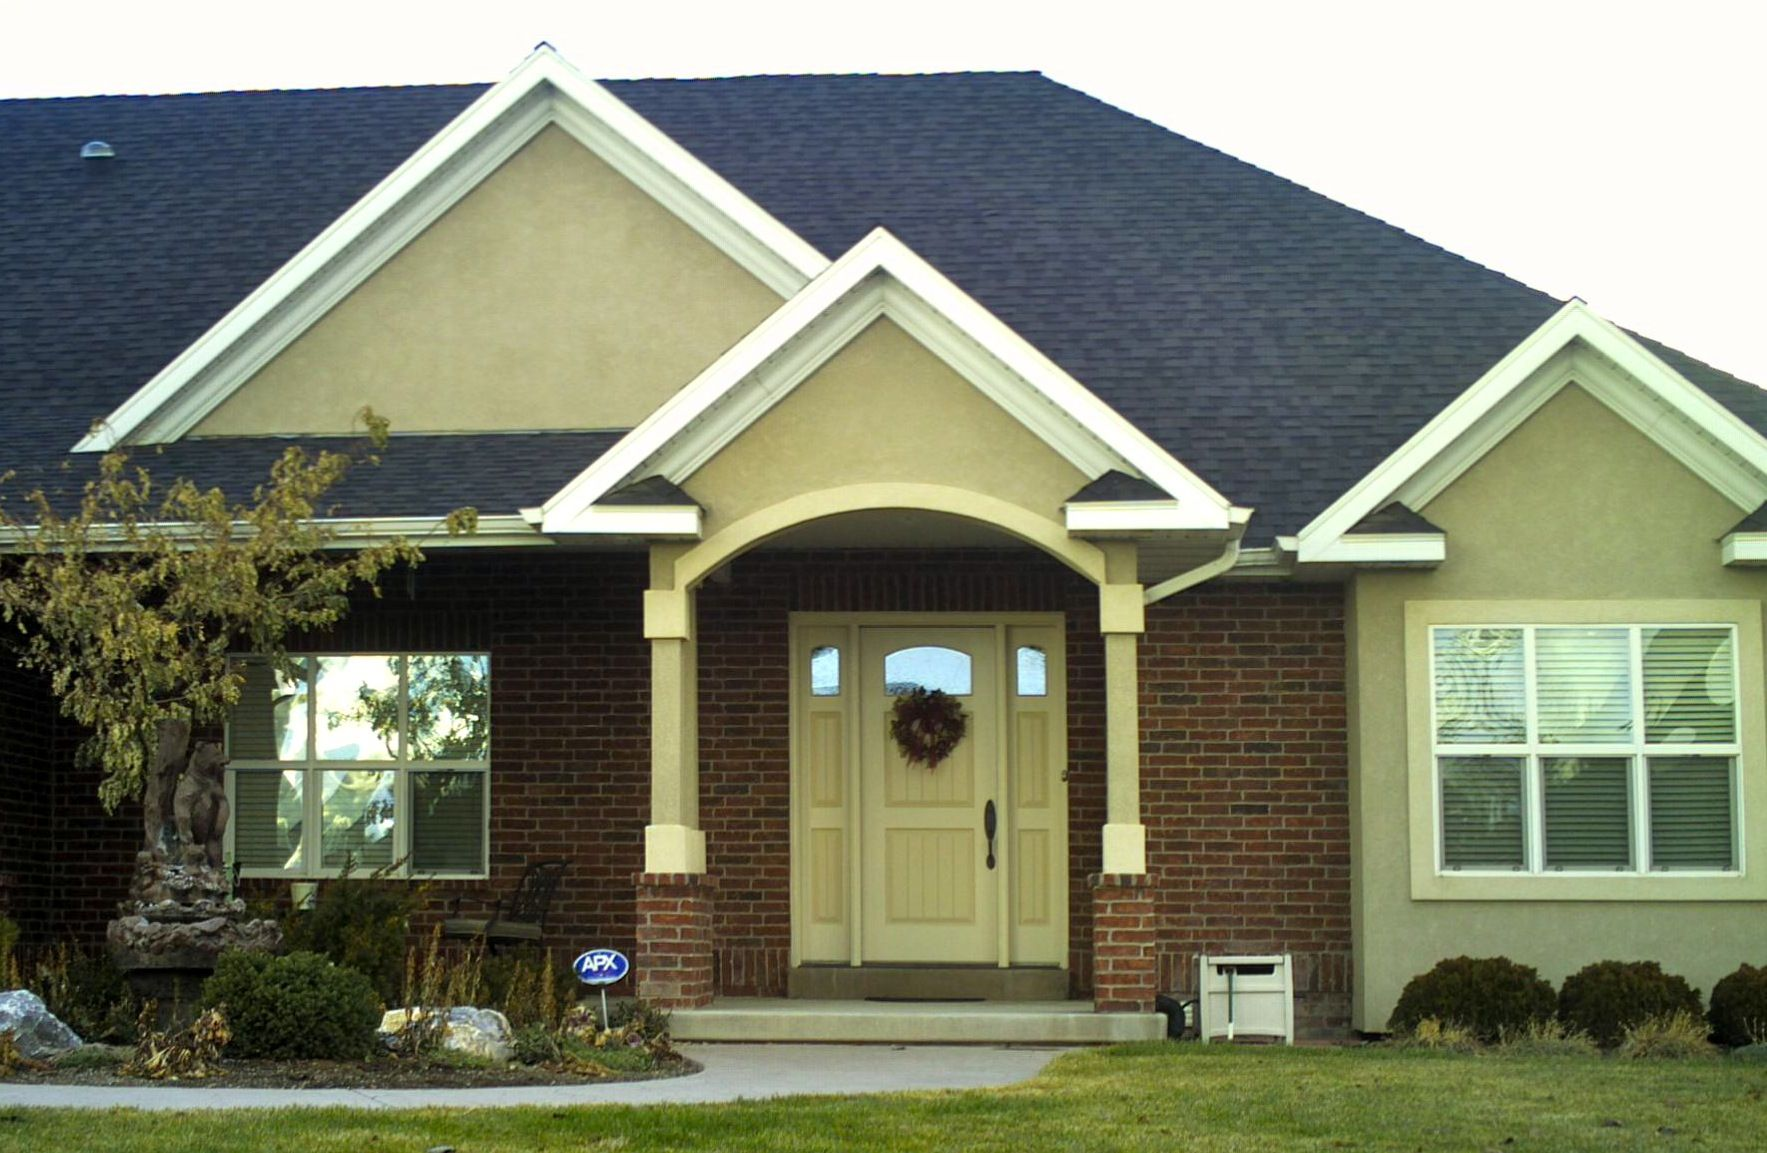 Exterior paint schemes stucco - Stucco Home Color Scheme Bing Images